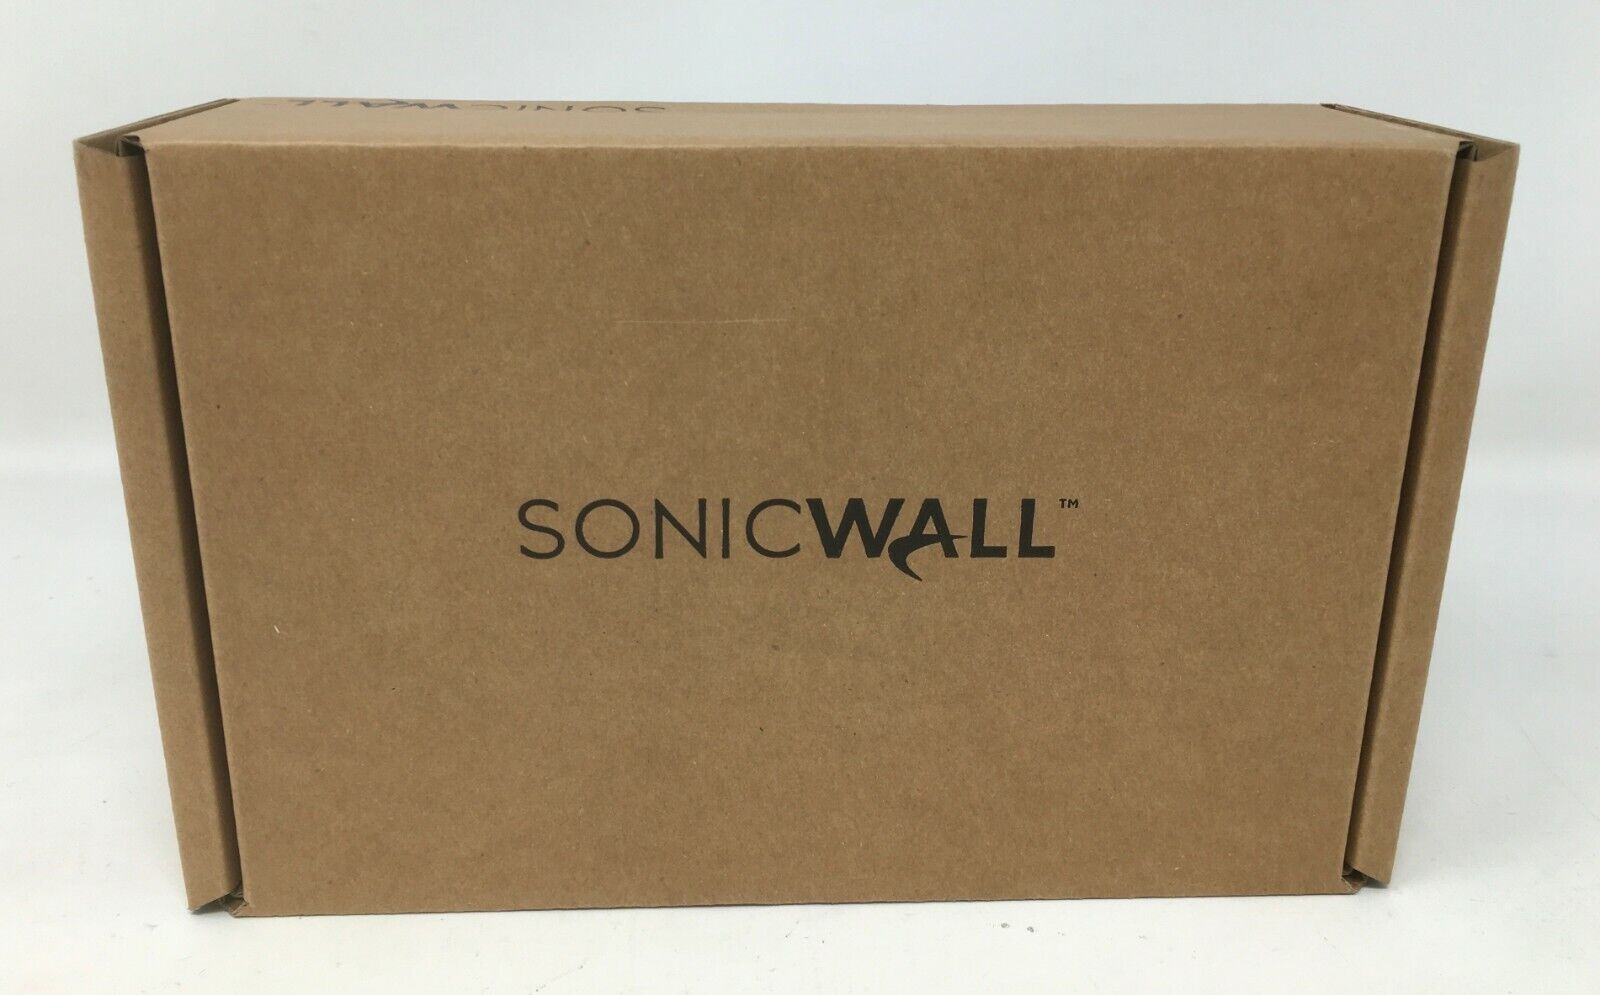 SonicWall SonicWave Wireless Access Point Gigabit 802.3AT Po